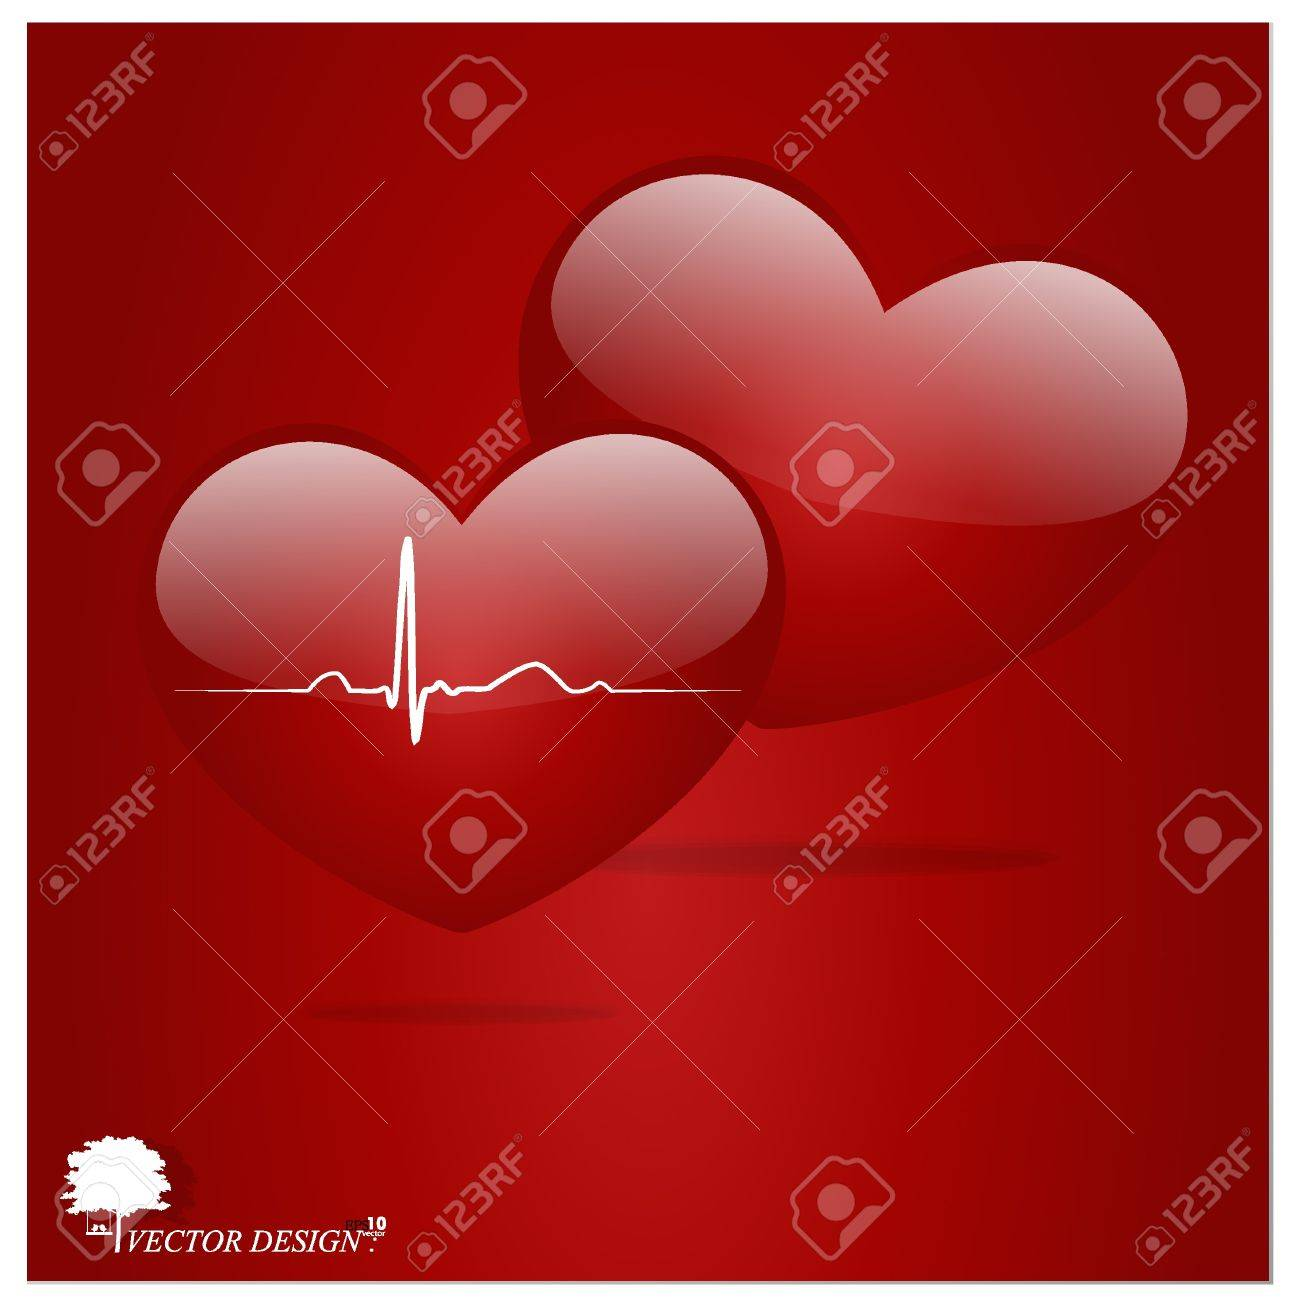 Heart with EKG signal. Valentine's Day. Stock Vector - 14178751